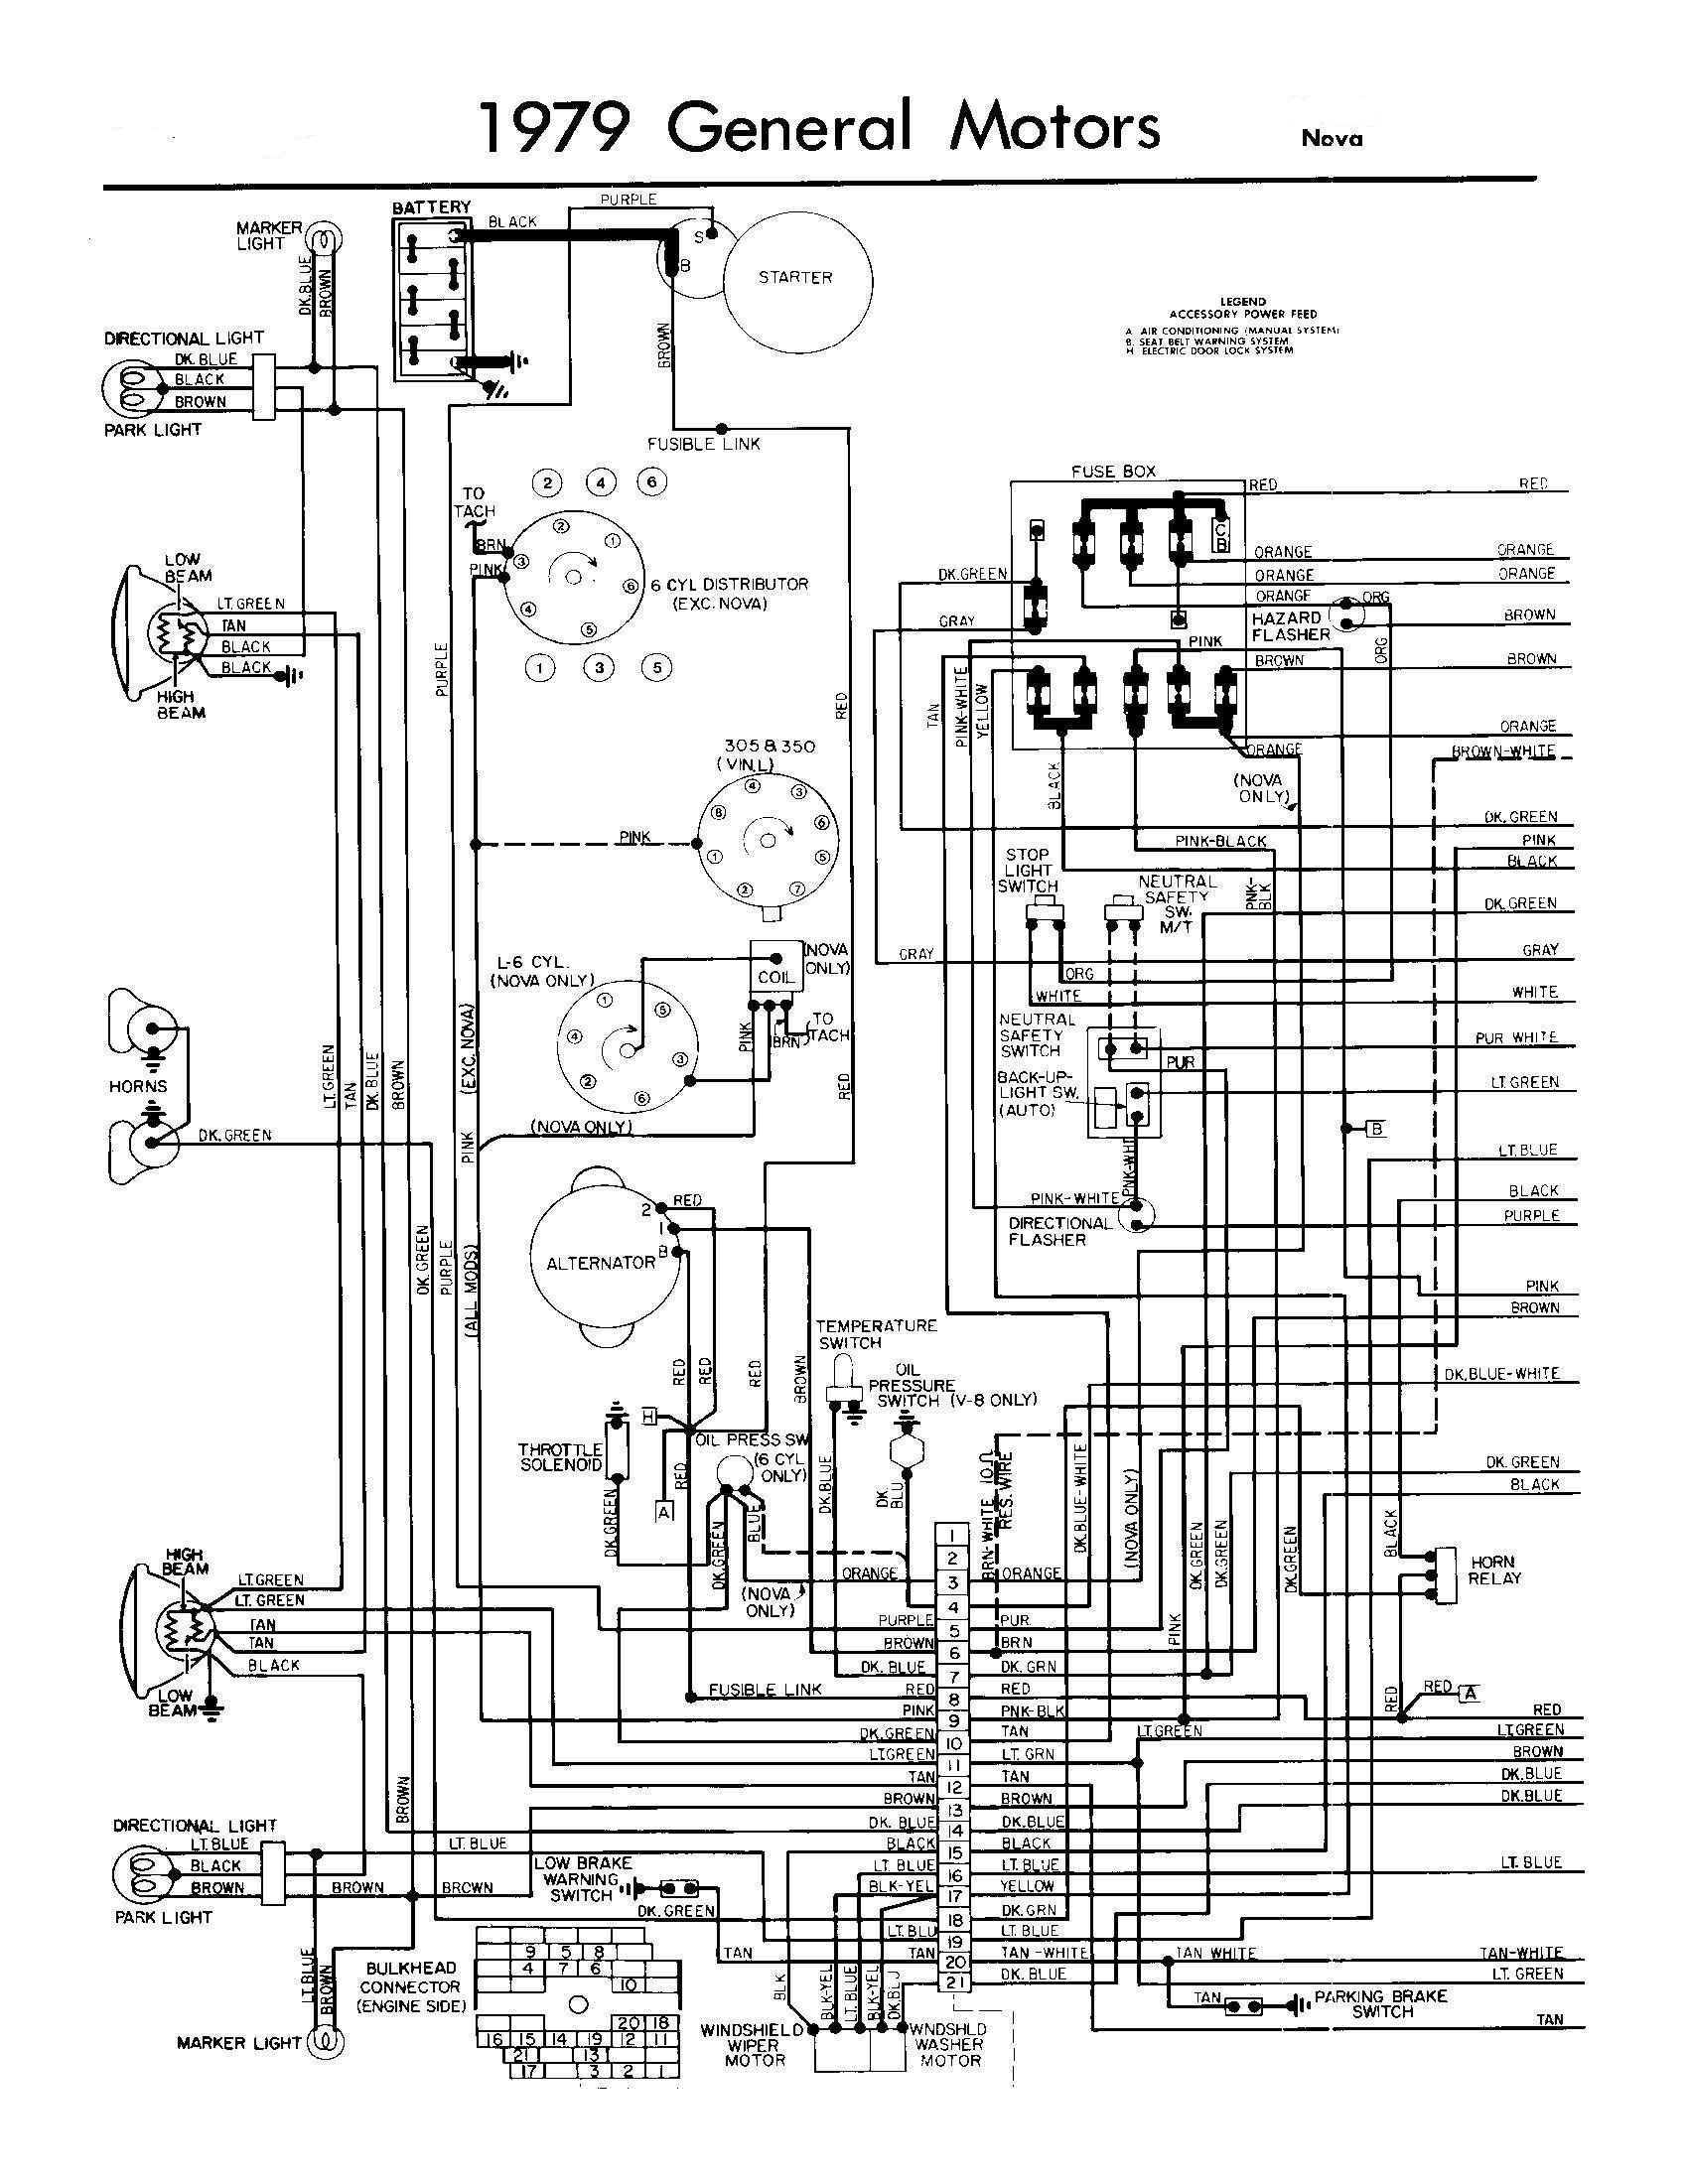 Car Schematic Diagram Wiring Diagram for Nest thermostat Diagrams